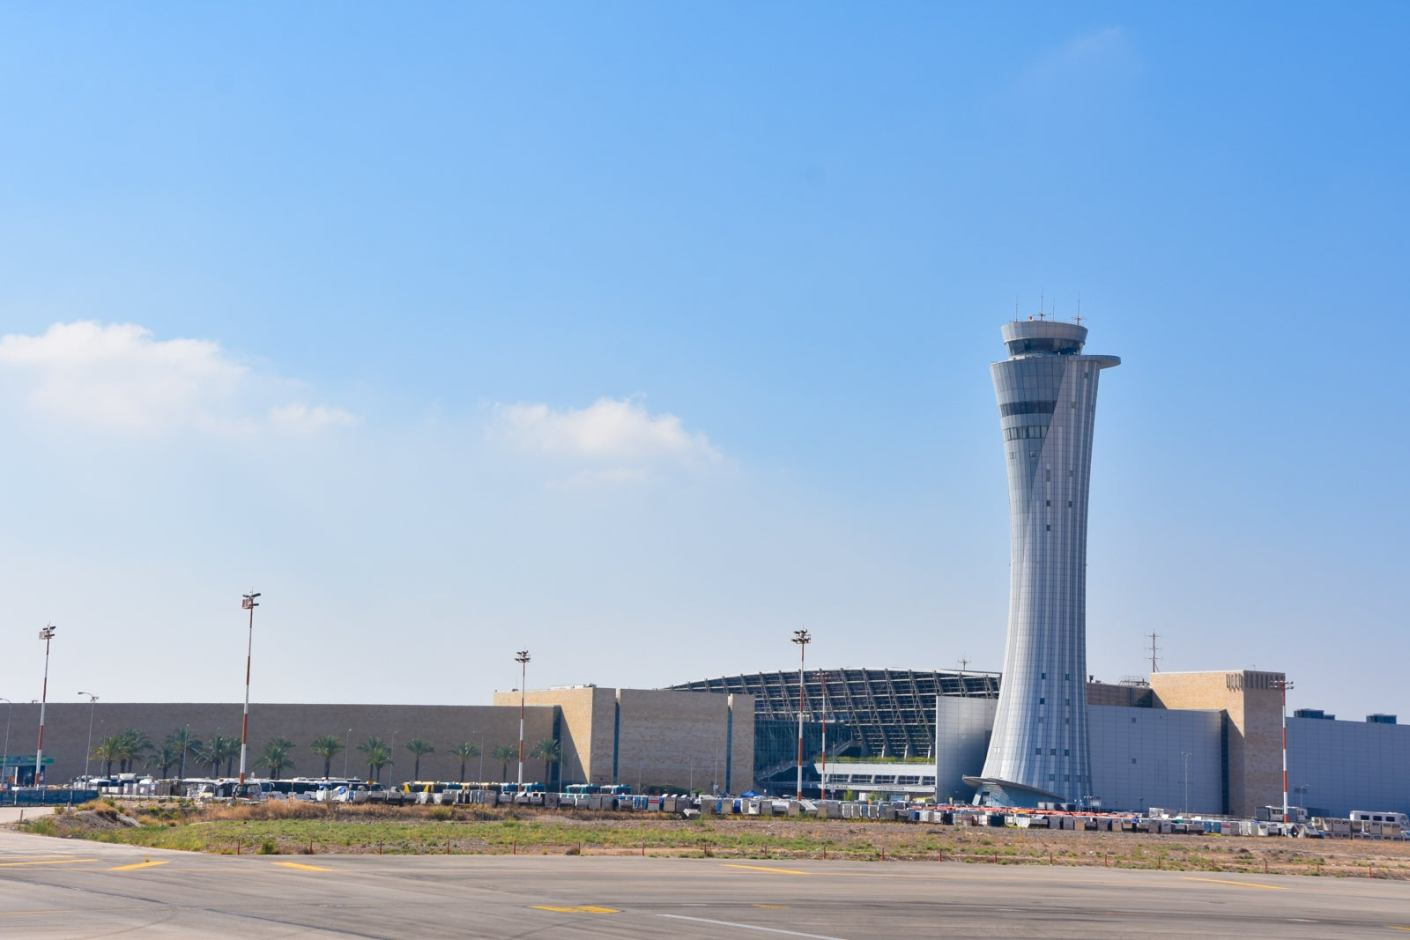 The Ben-Gurion International Airport is the largest international airport in Israel. (Photo via Getty Images)